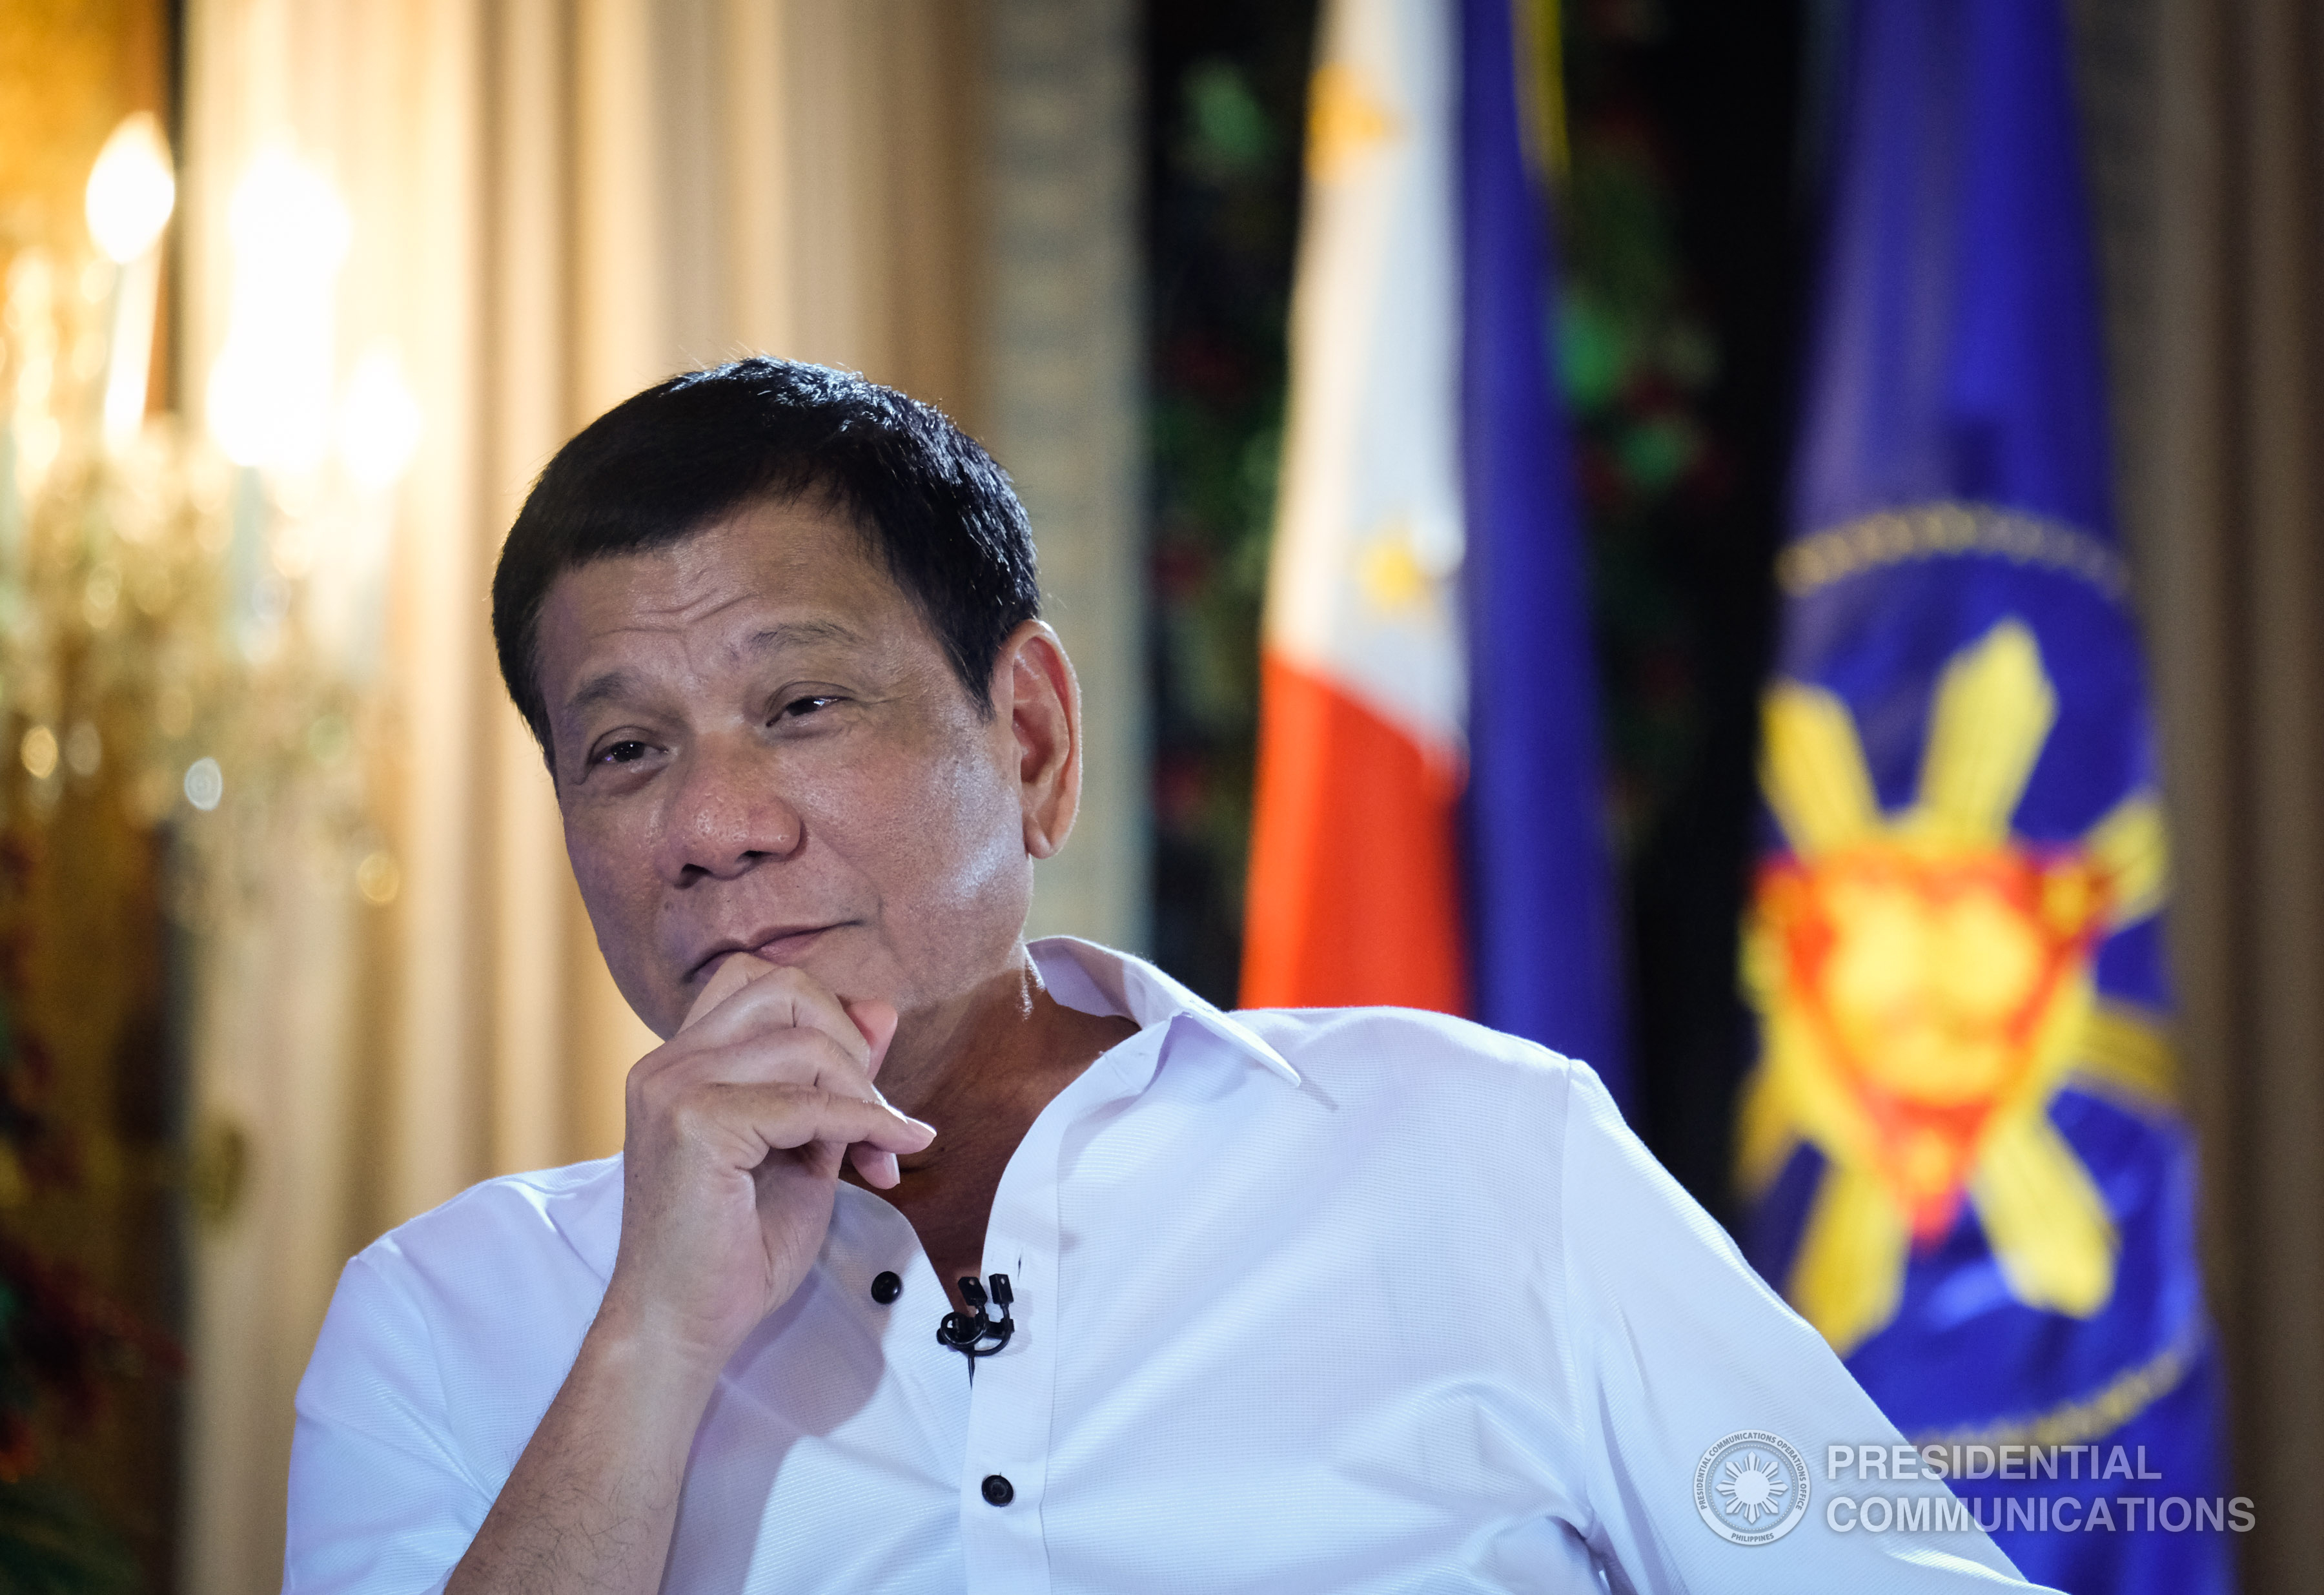 Duterte did not explain the basis for his suspicions, but he has led a brutal crackdown against illegal drugs since he took office in June. (PCO photo)